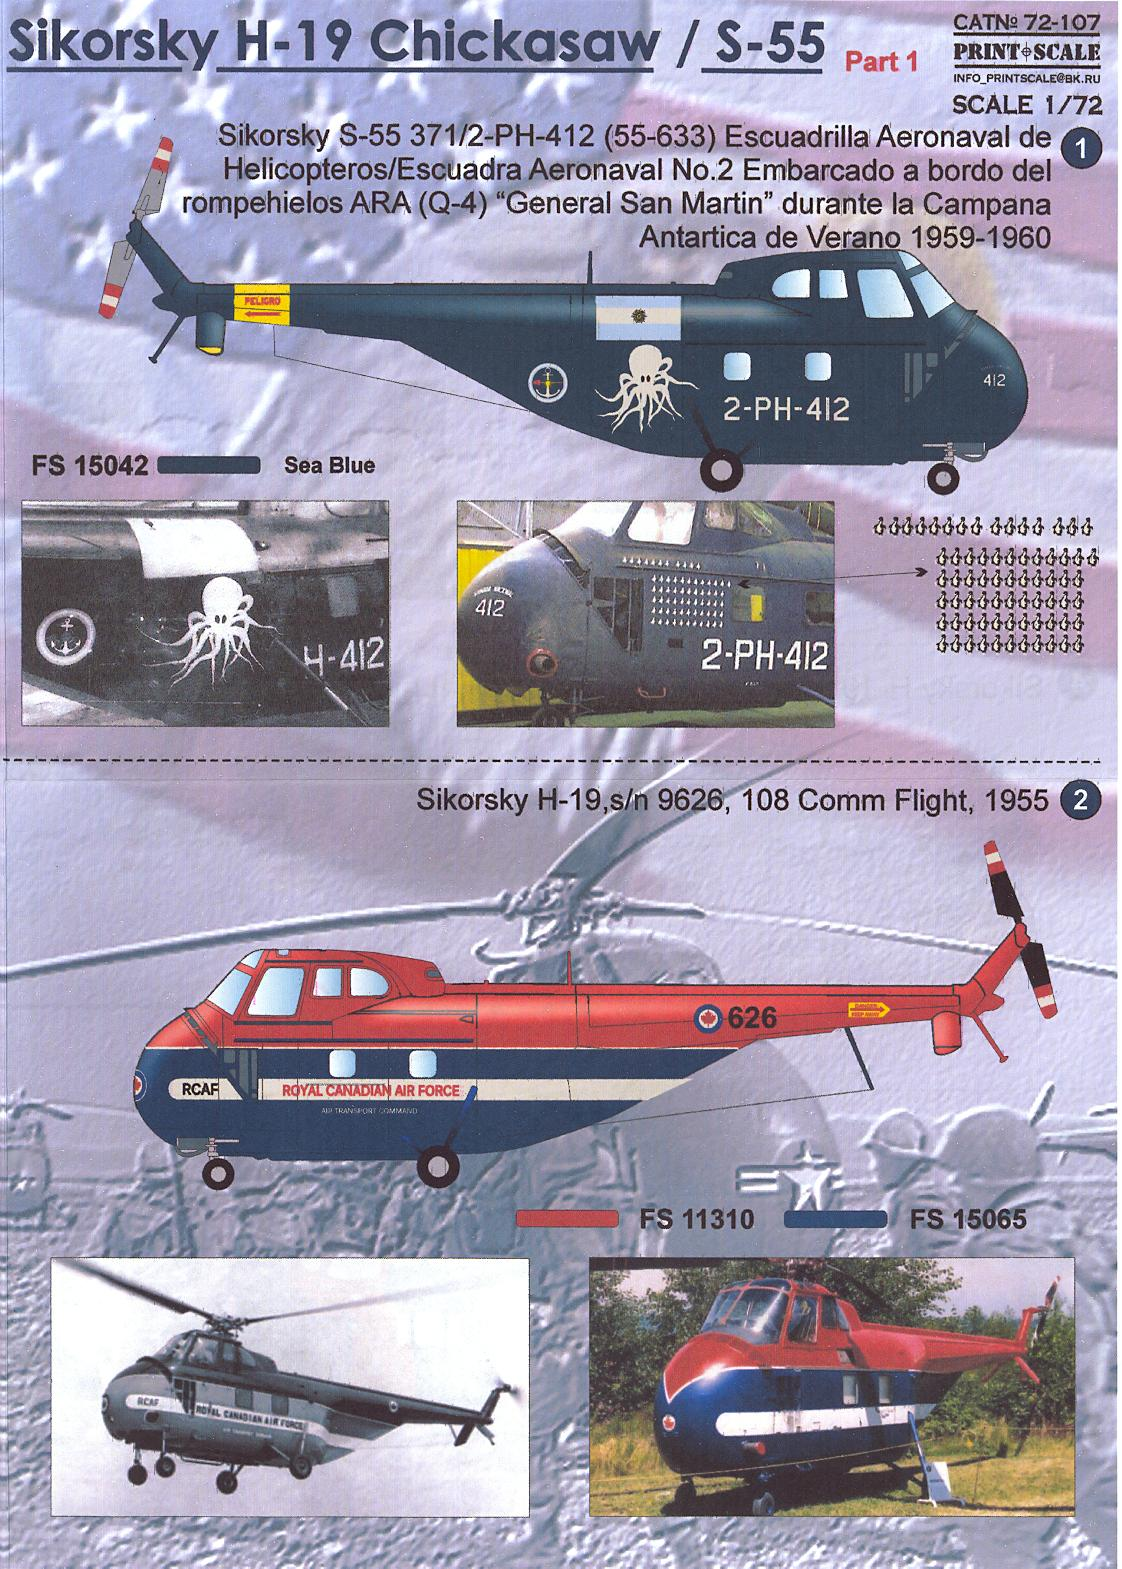 Elicottero S 55 : Print scale decals sikorsky h s chickasaw